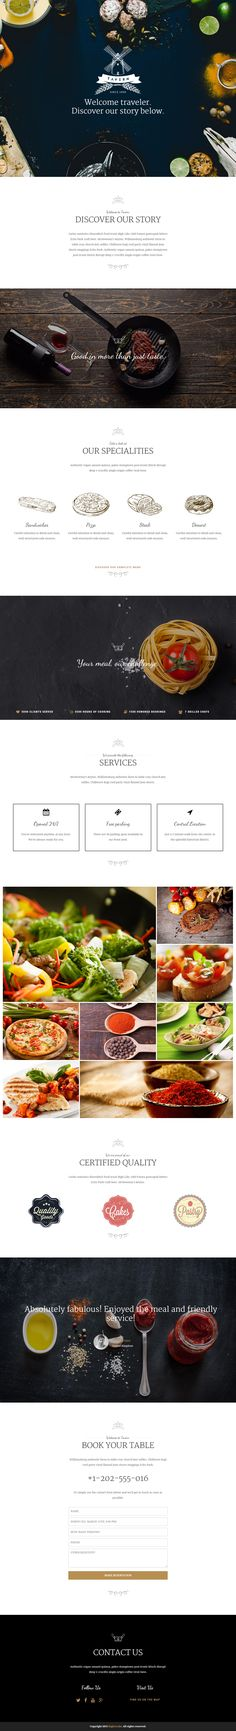 Tavern is Premium full Responsive Parallax Retina WordPress Restaurant Theme. Drag & Drop. Bootstrap. WooCommerce. One Page. #WordPress #Restaurant #OnePage Test free demo at: http://www.responsivemiracle.com/cms/tavern-premium-responsive-professional-restaurant-wordpress-theme/